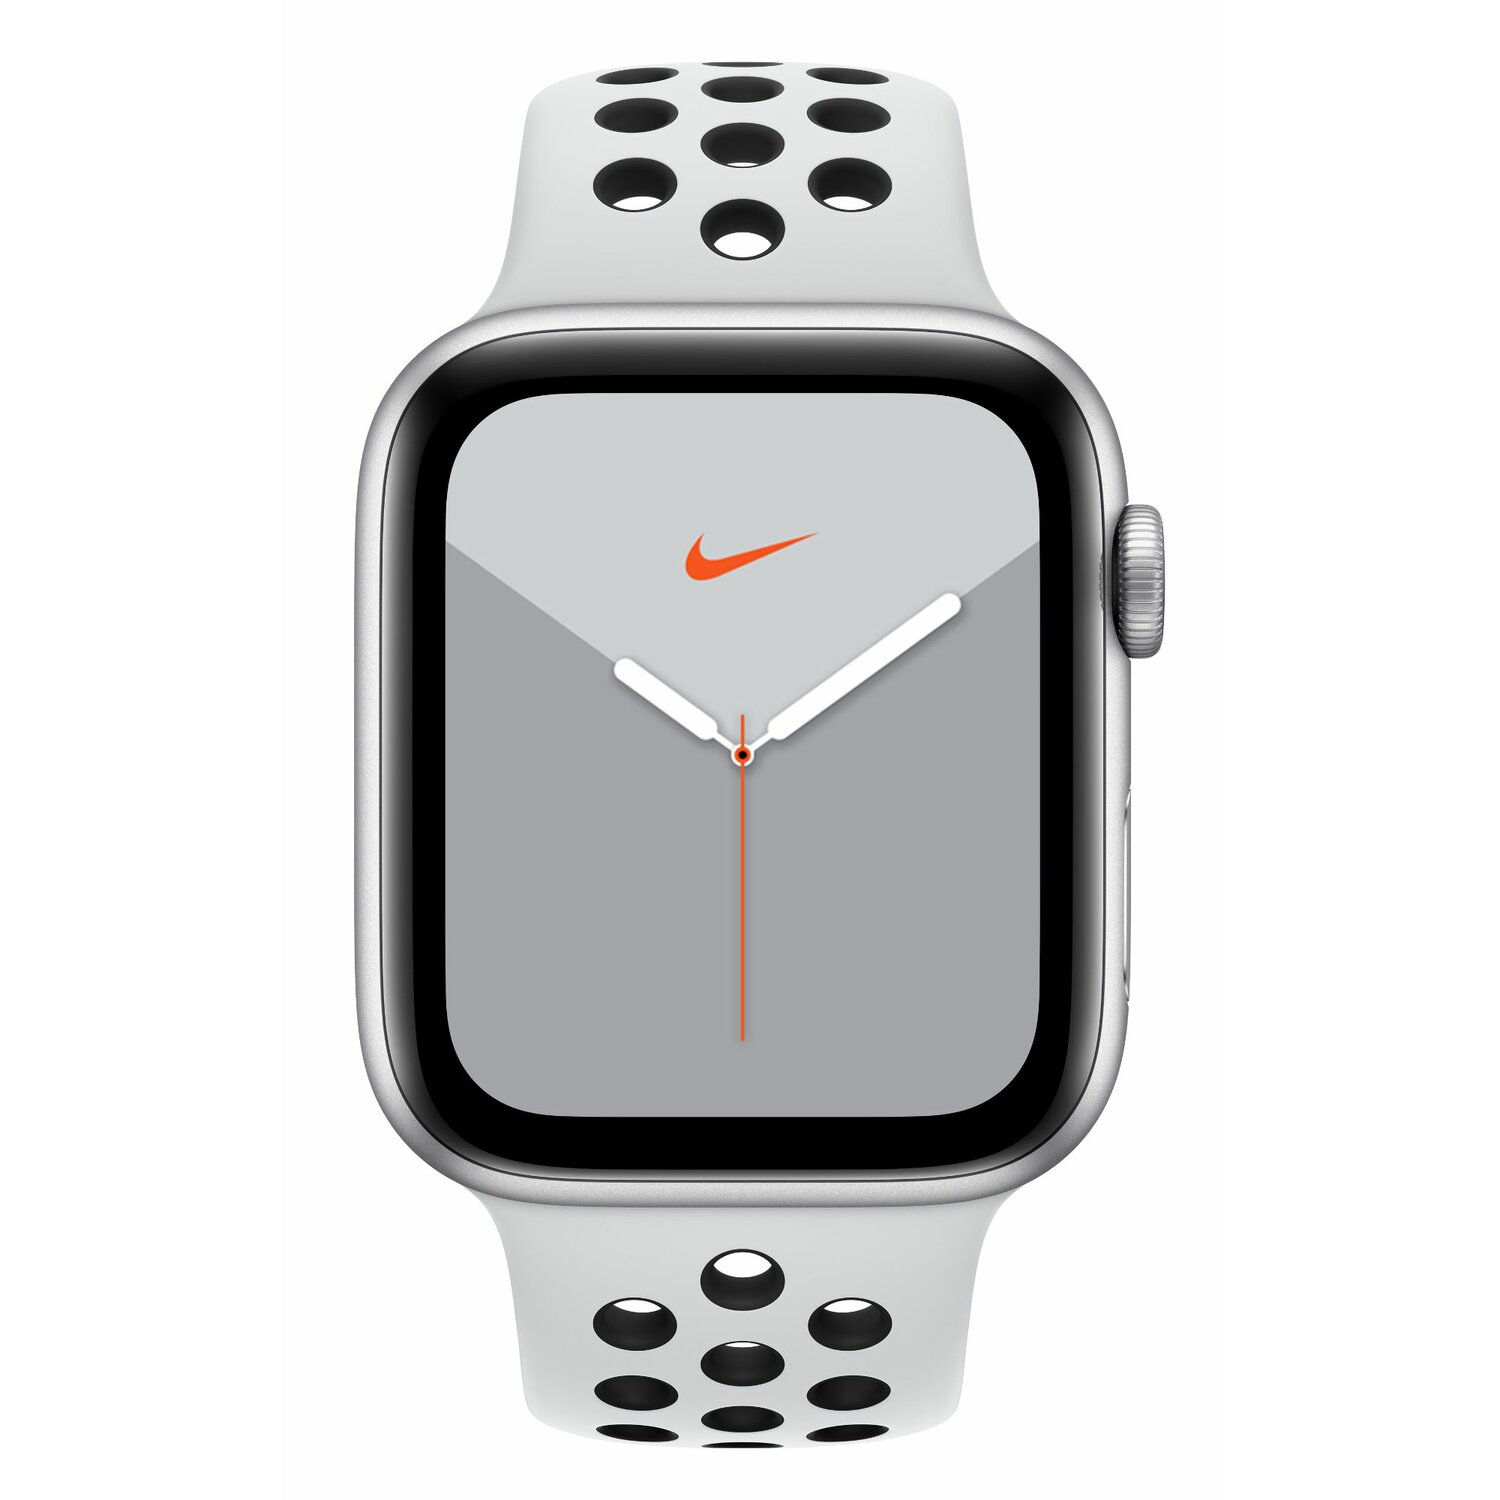 SmartWatch APPLE Watch Nike+ Series 5 GPS+Cellular Koperta 44 mm z aluminium w kolorze srebrnym z paskiem sportowym Nike w kolorze czystej platyny/czarnym MX3E2WB/A